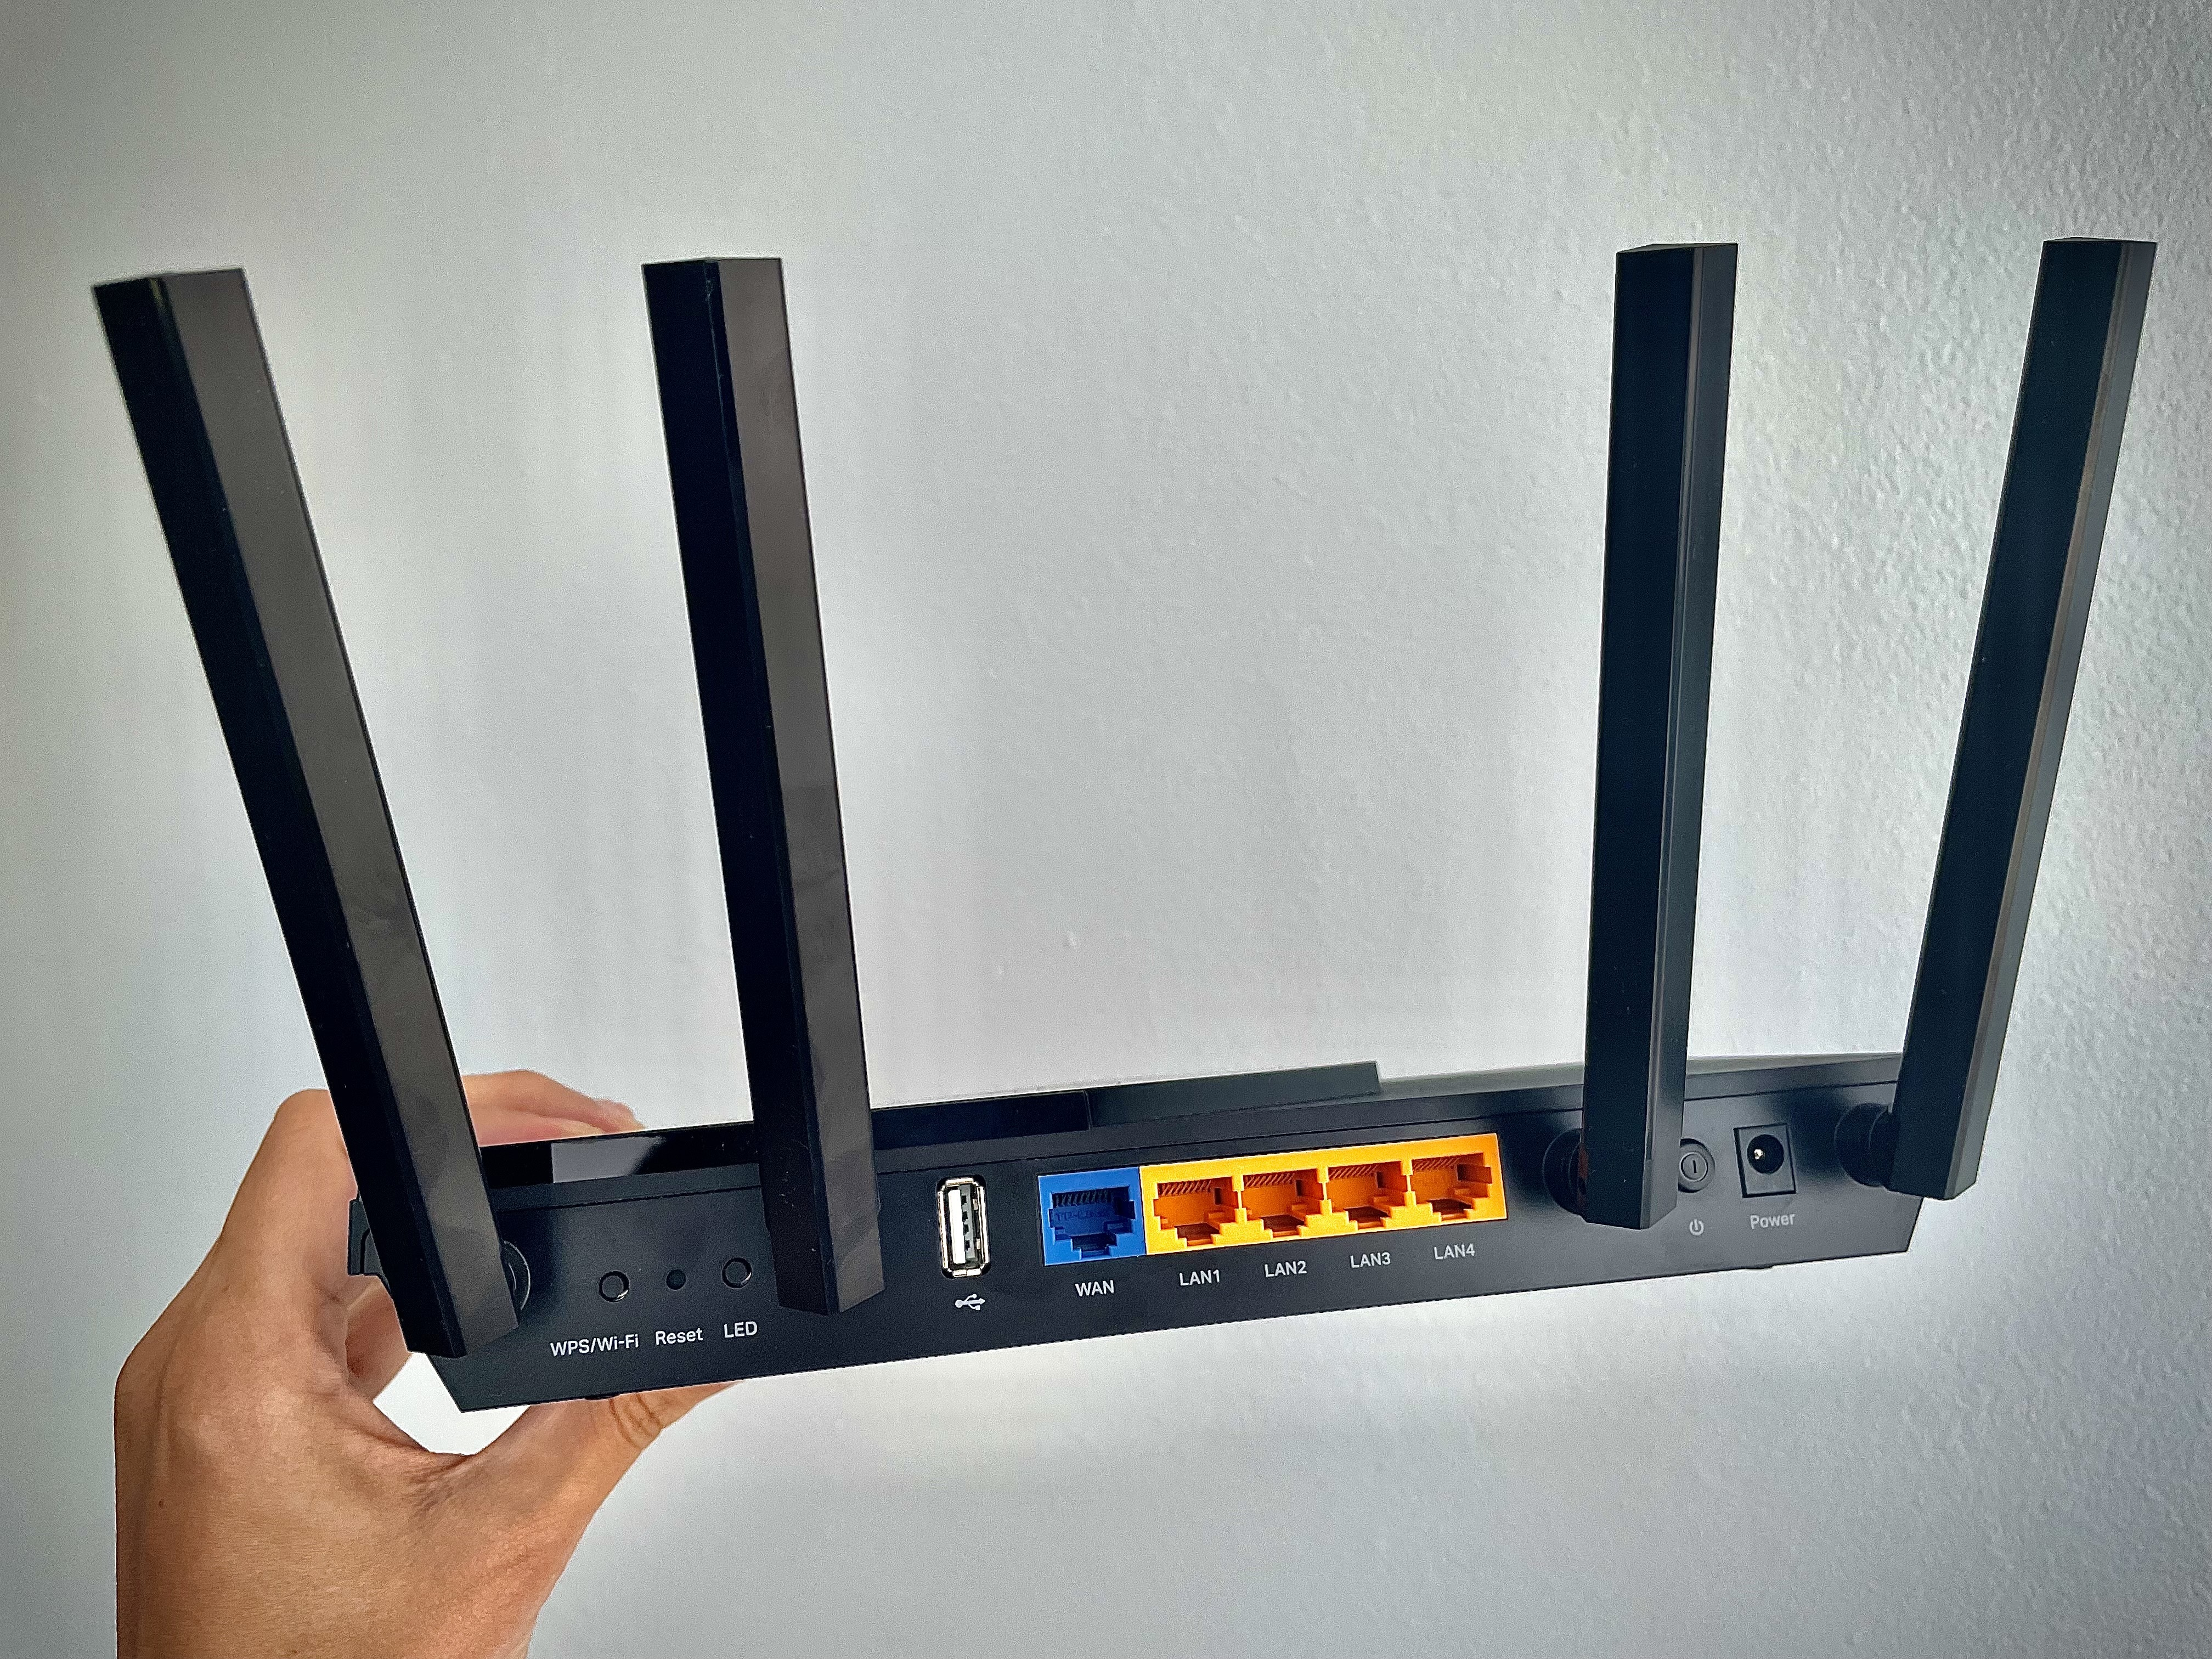 tp-link-archer-ax21-ax1800-wi-fi-6-router-back-ports